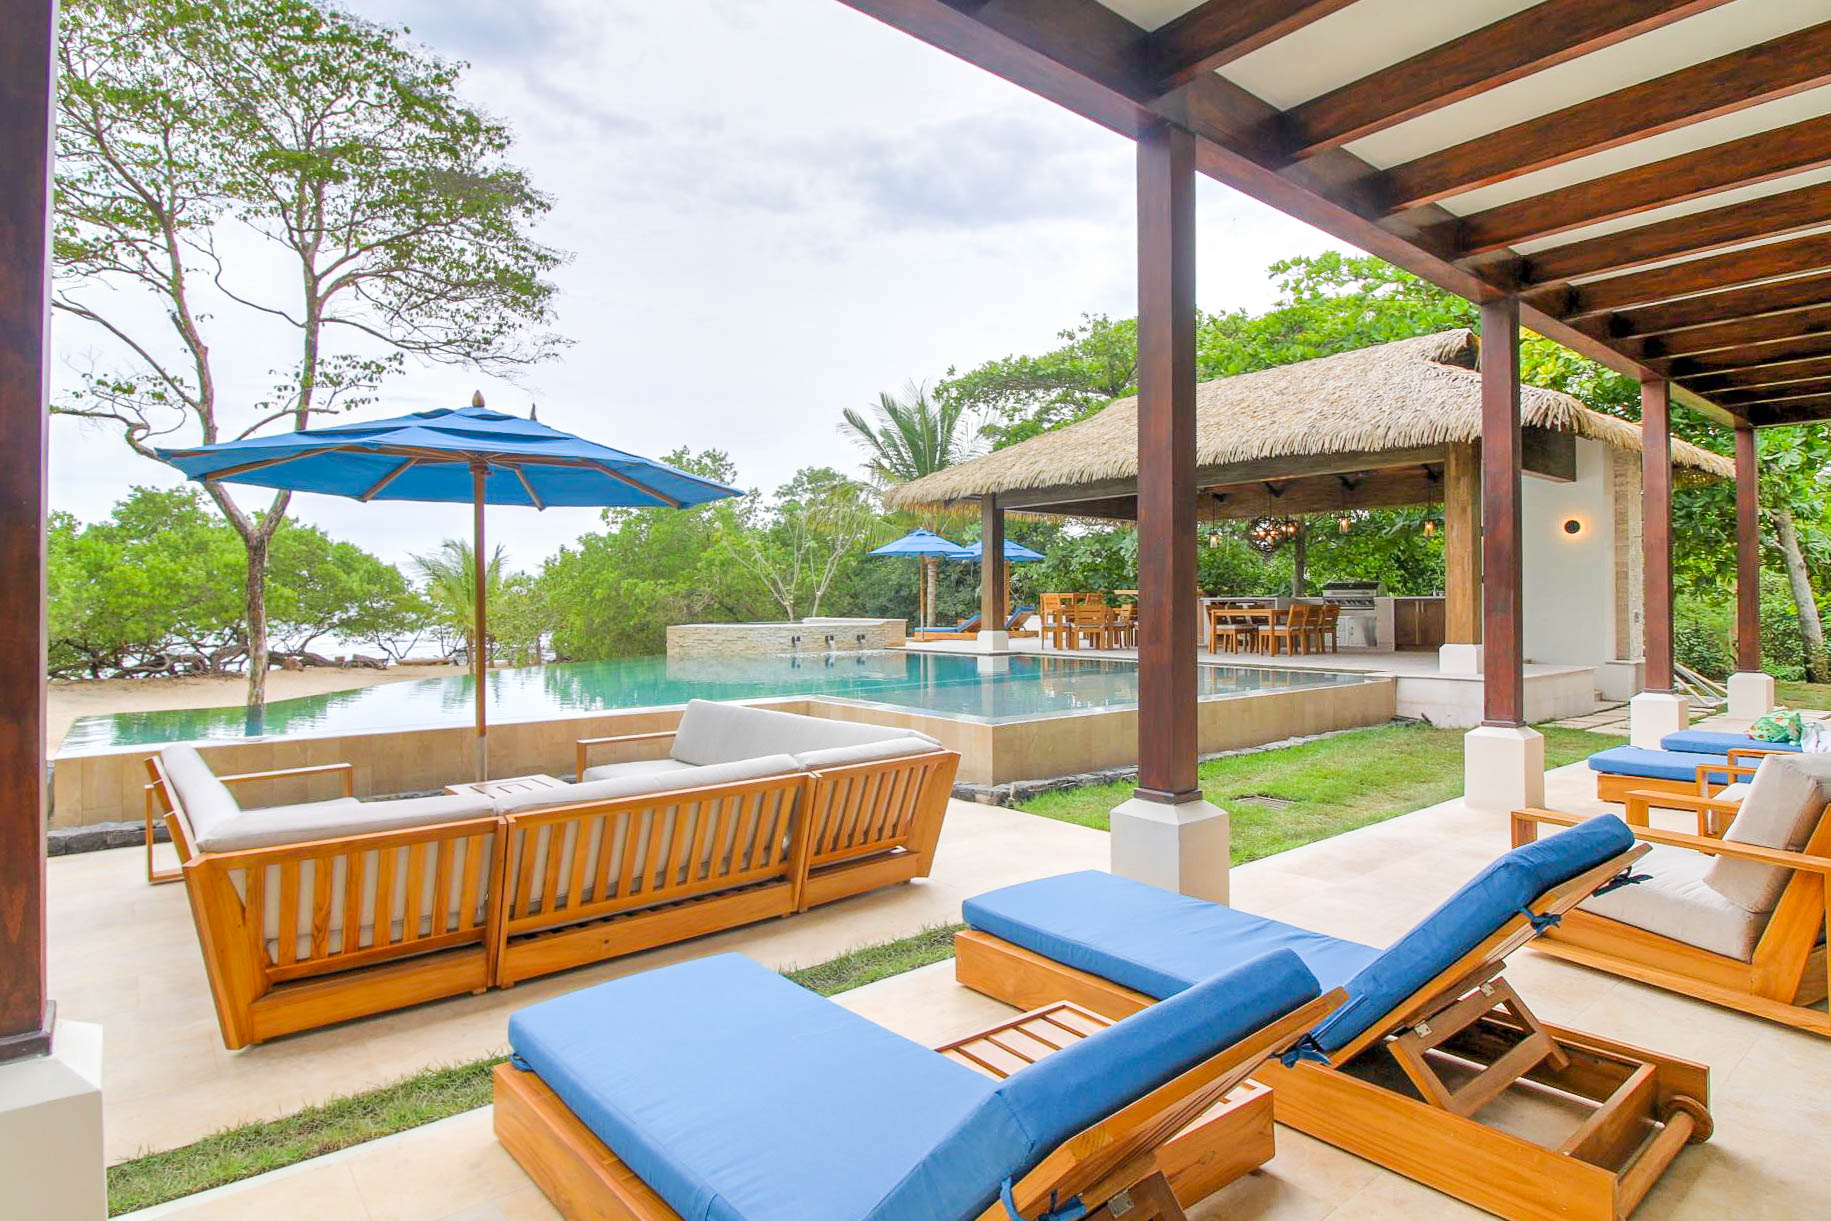 Plenty of space for outdoor relaxation at Casa Costa Blanca